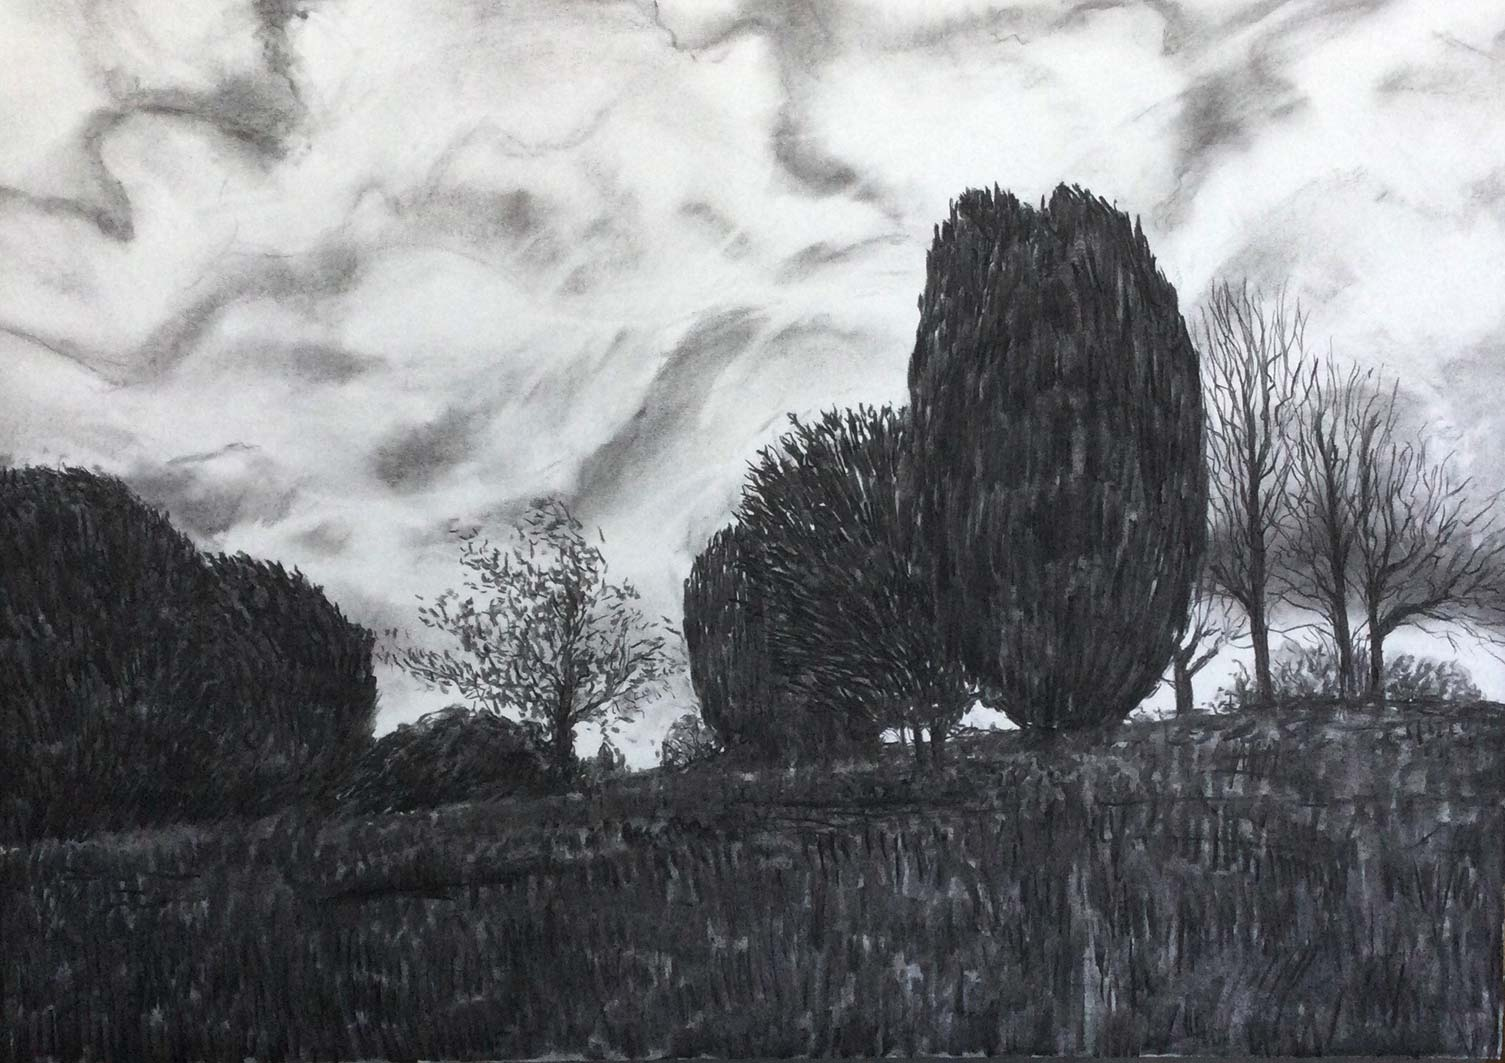 Godly Sky over St Andrews, charcoal, 53x76cm